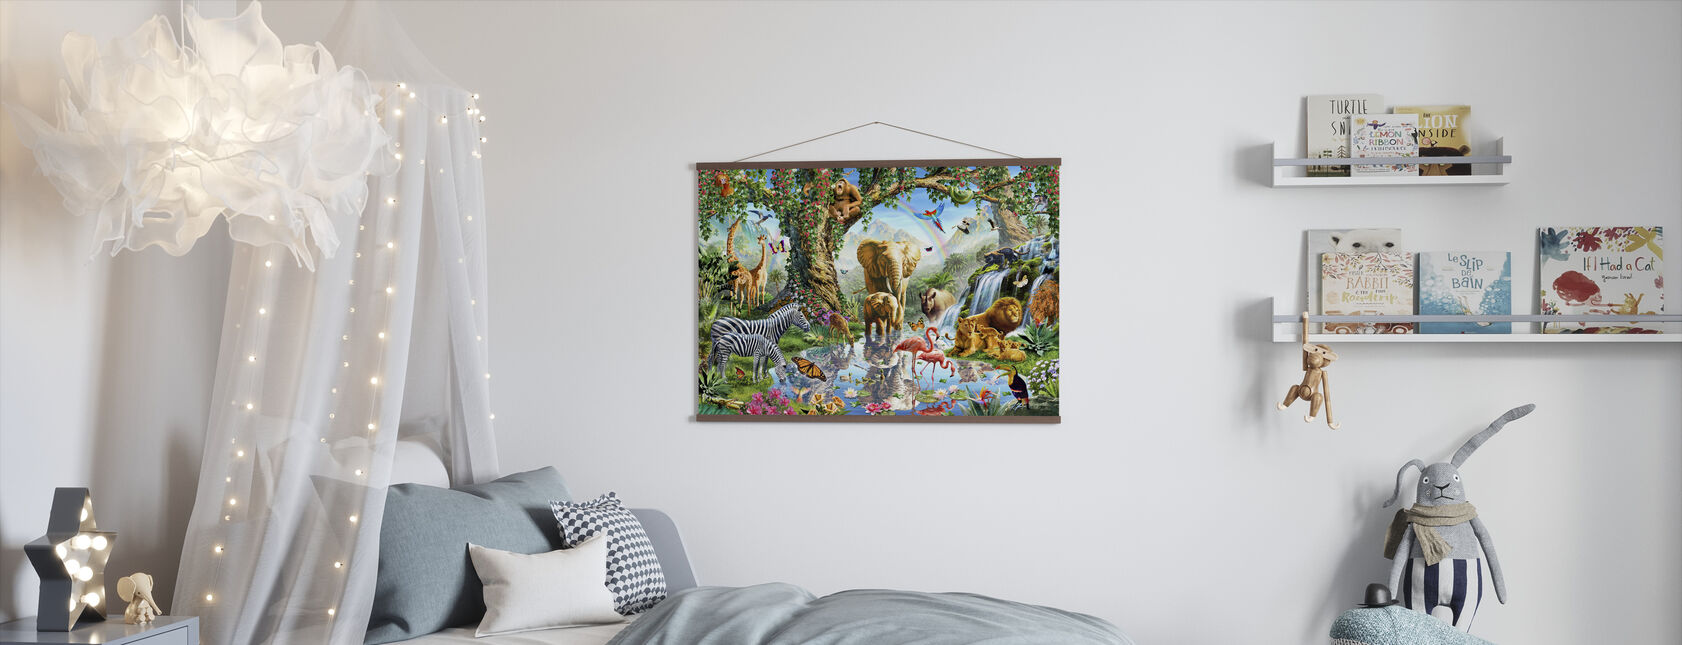 Jungle Lake med ville dyr - Plakat - Barnerom